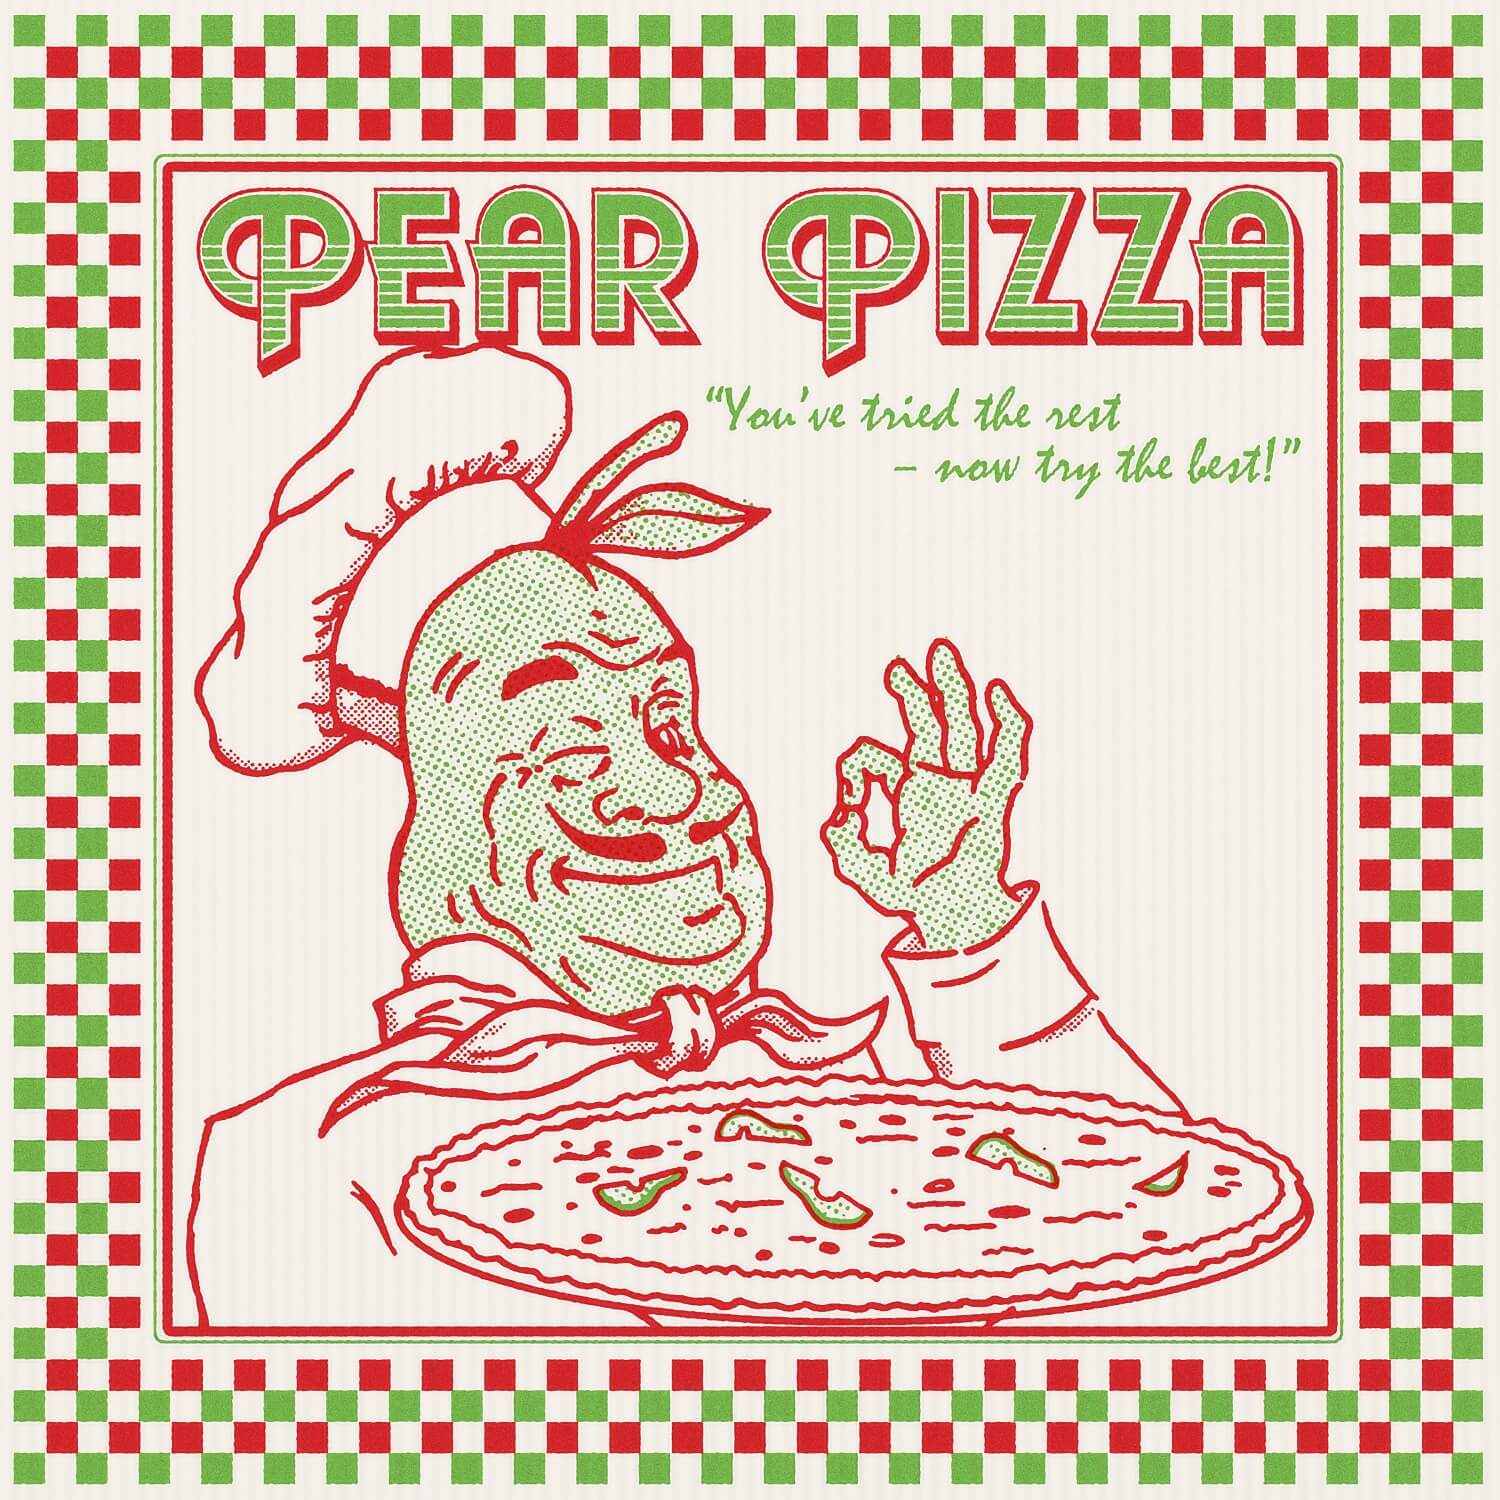 pear pizza image